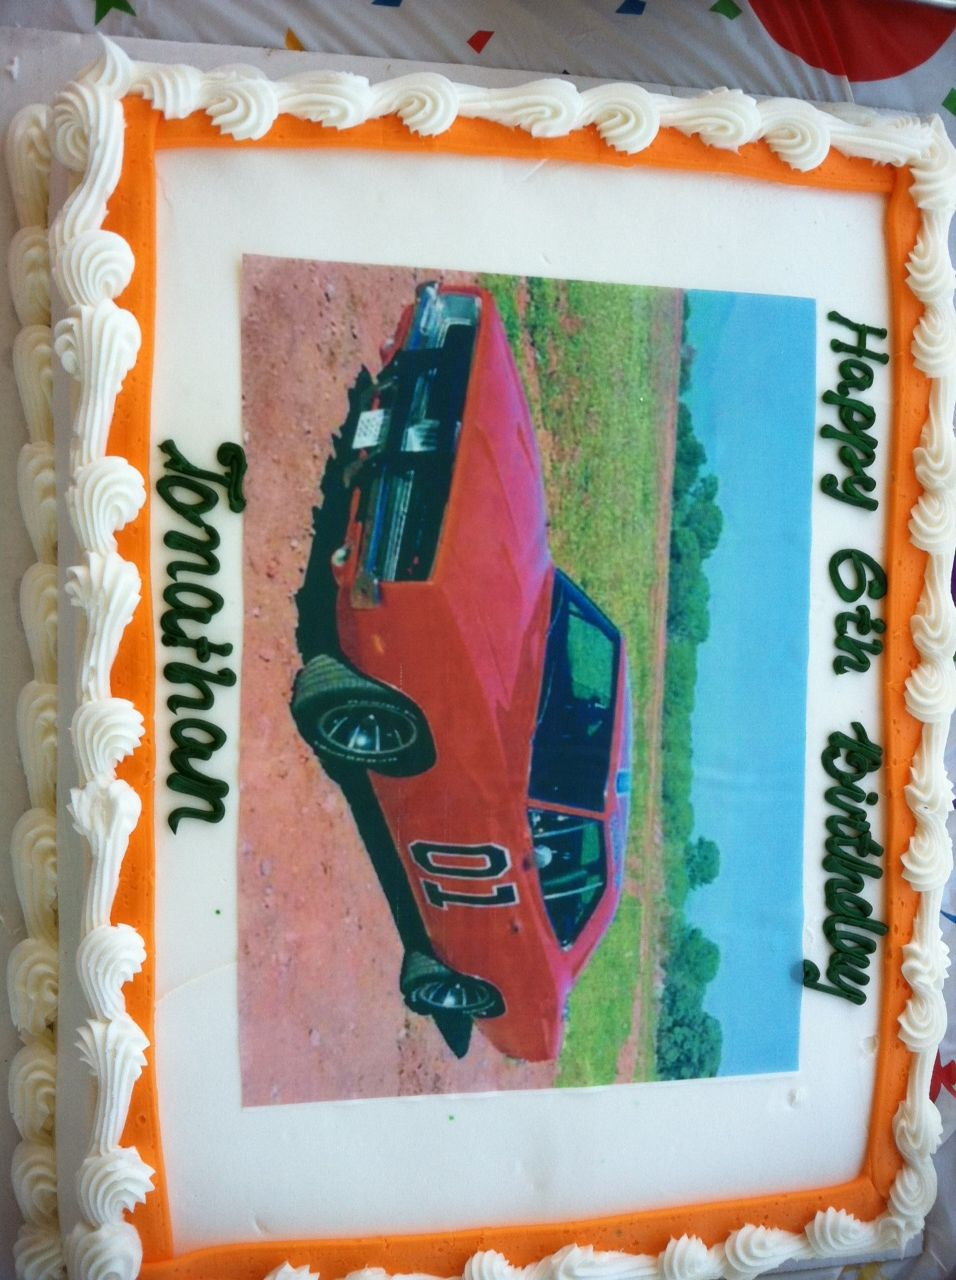 Cant Find A Dukes Of Hazzard Cake Topper Well Look No Further